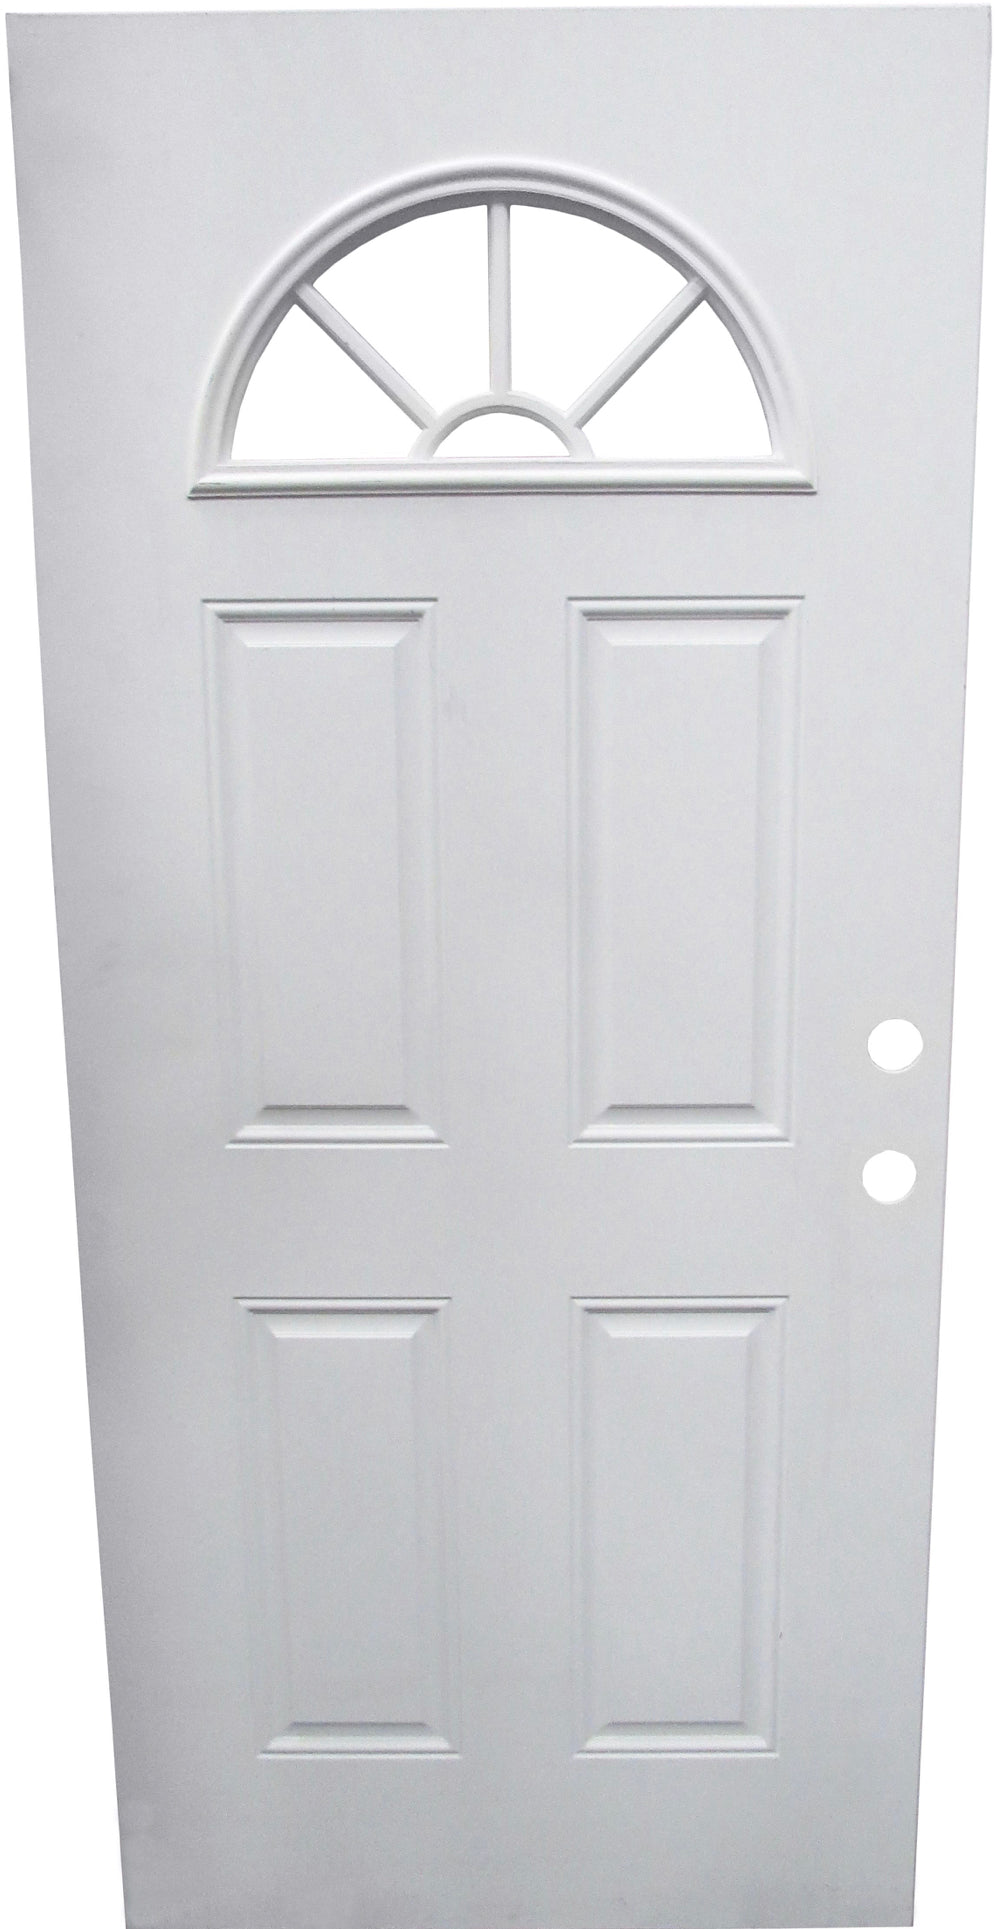 STEEL DOOR - 5 LITE SUNBURST (SALE)